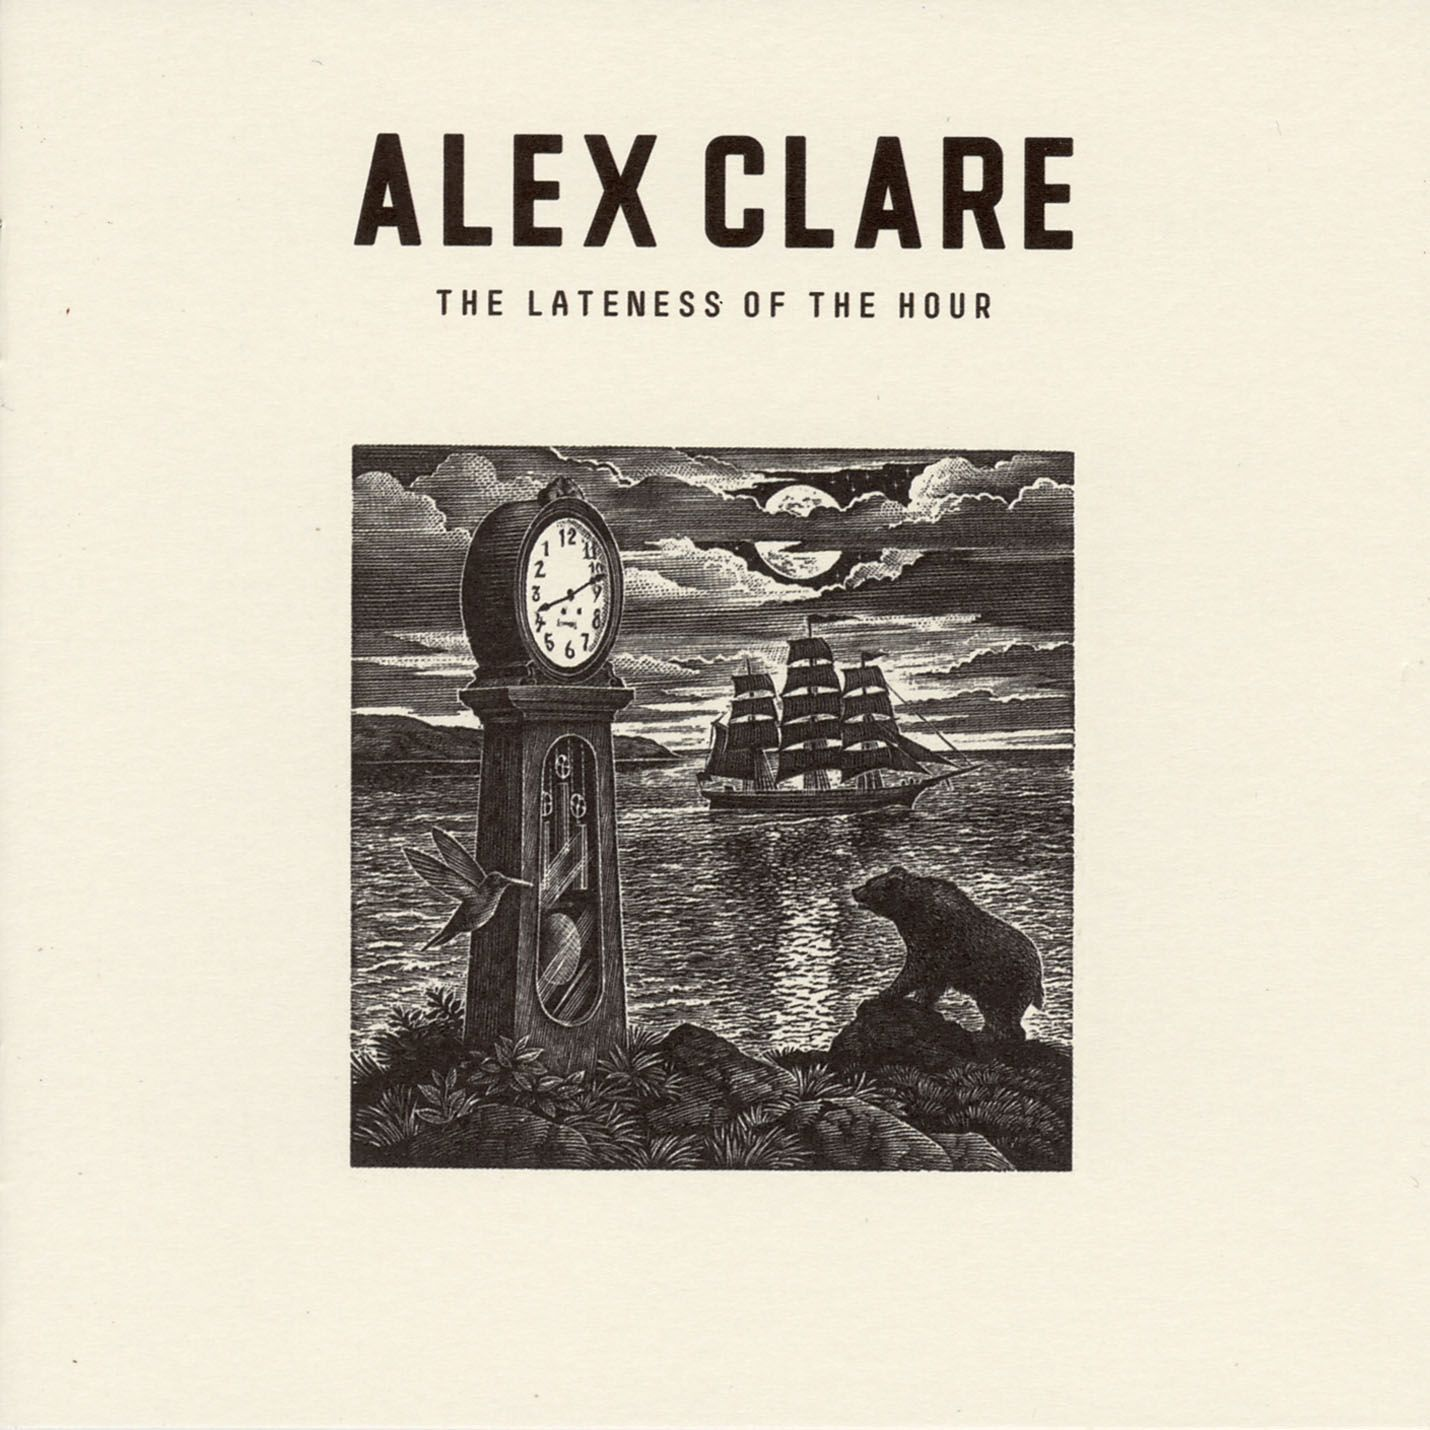 Alex Clare - The Lateness Of The Hour album cover